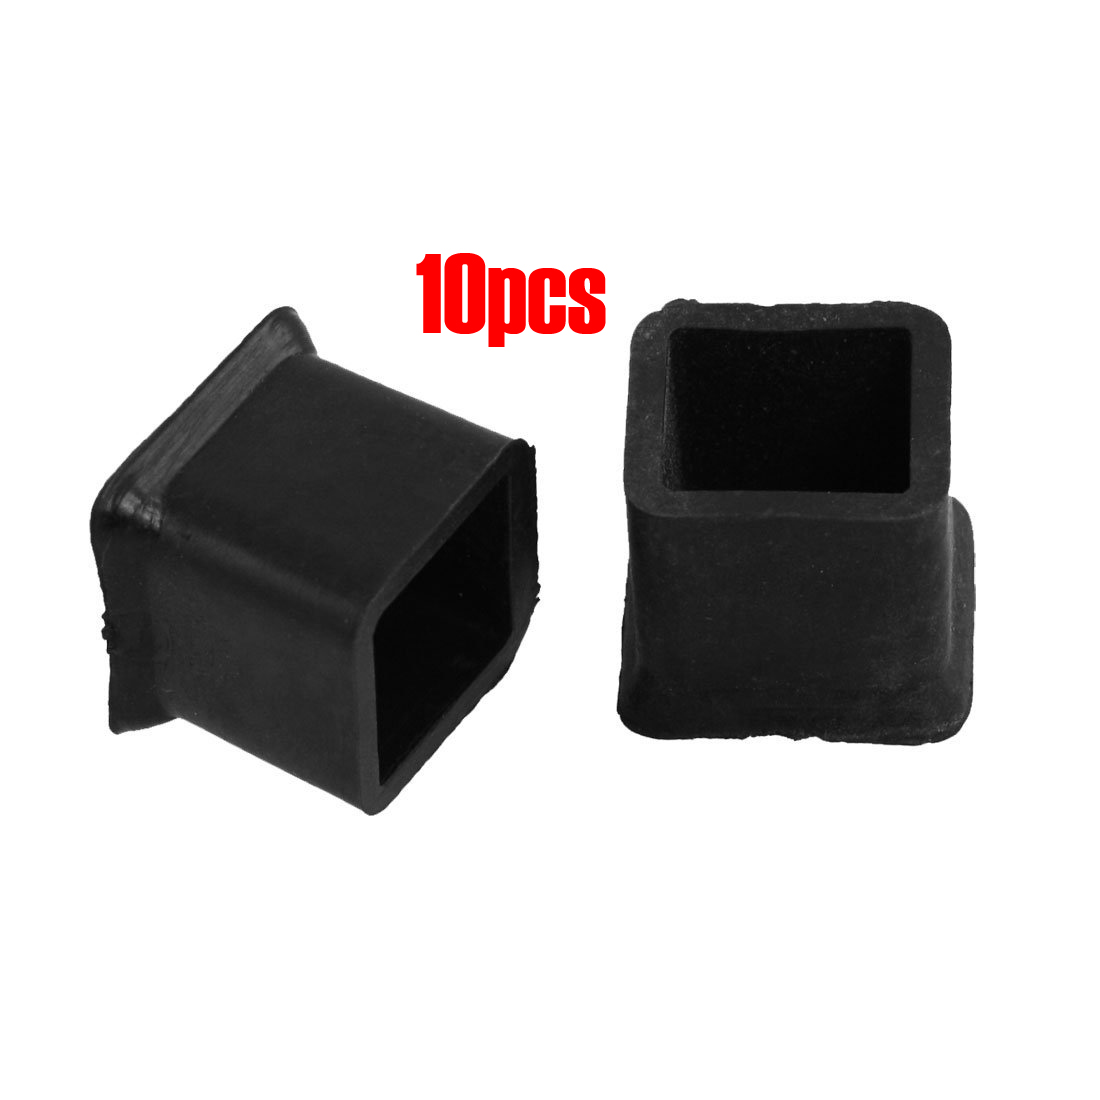 New 10Pcs Furniture Chair Table Leg Rubber Foot Covers Protectors 20mm x 20mm szs hot new 10pcs furniture chair table leg rubber foot covers protectors 20mm x 20mm free shipping